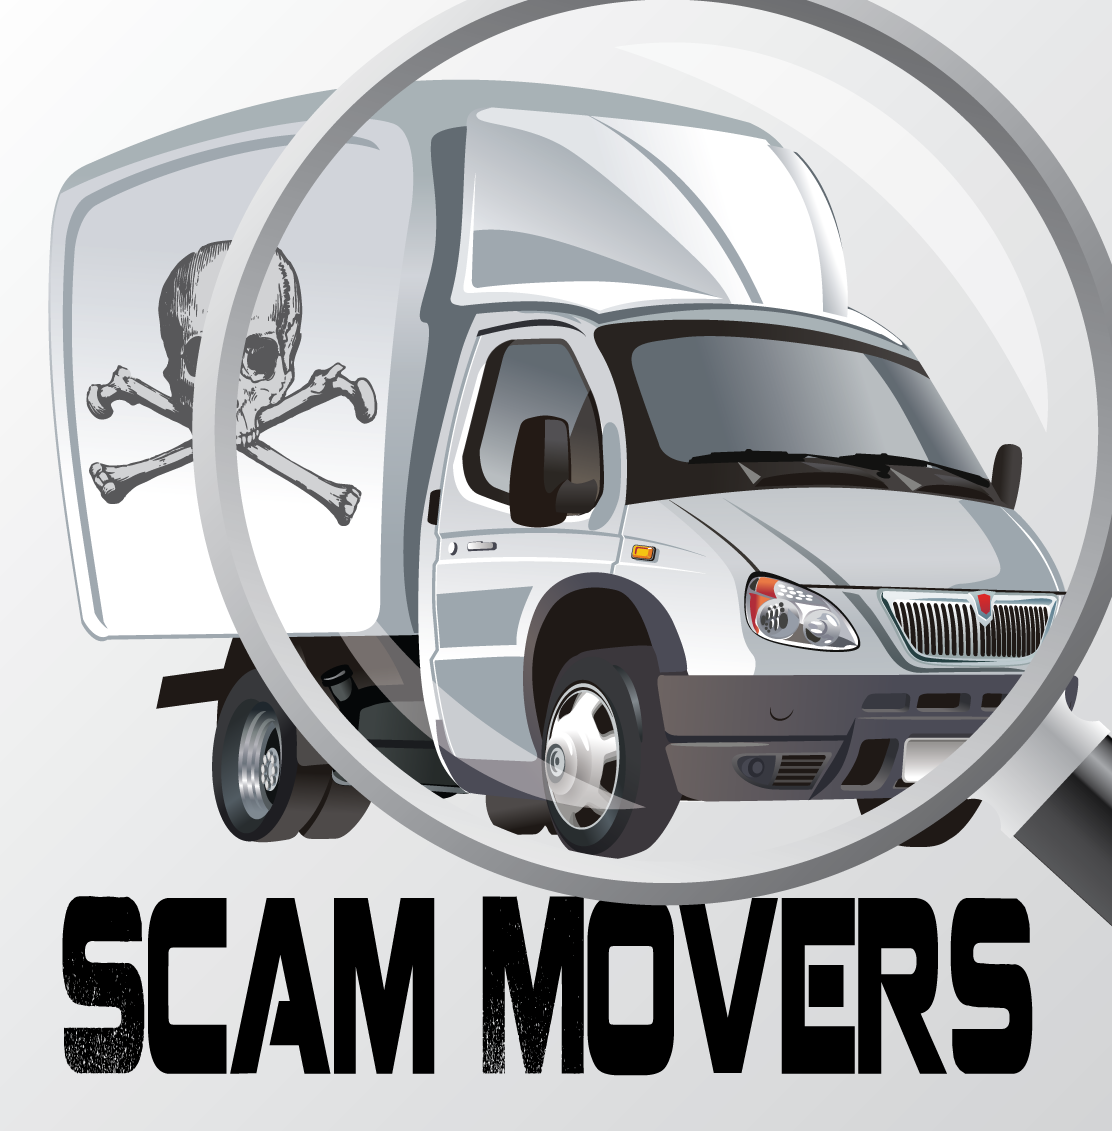 How to select the mover who is best for you